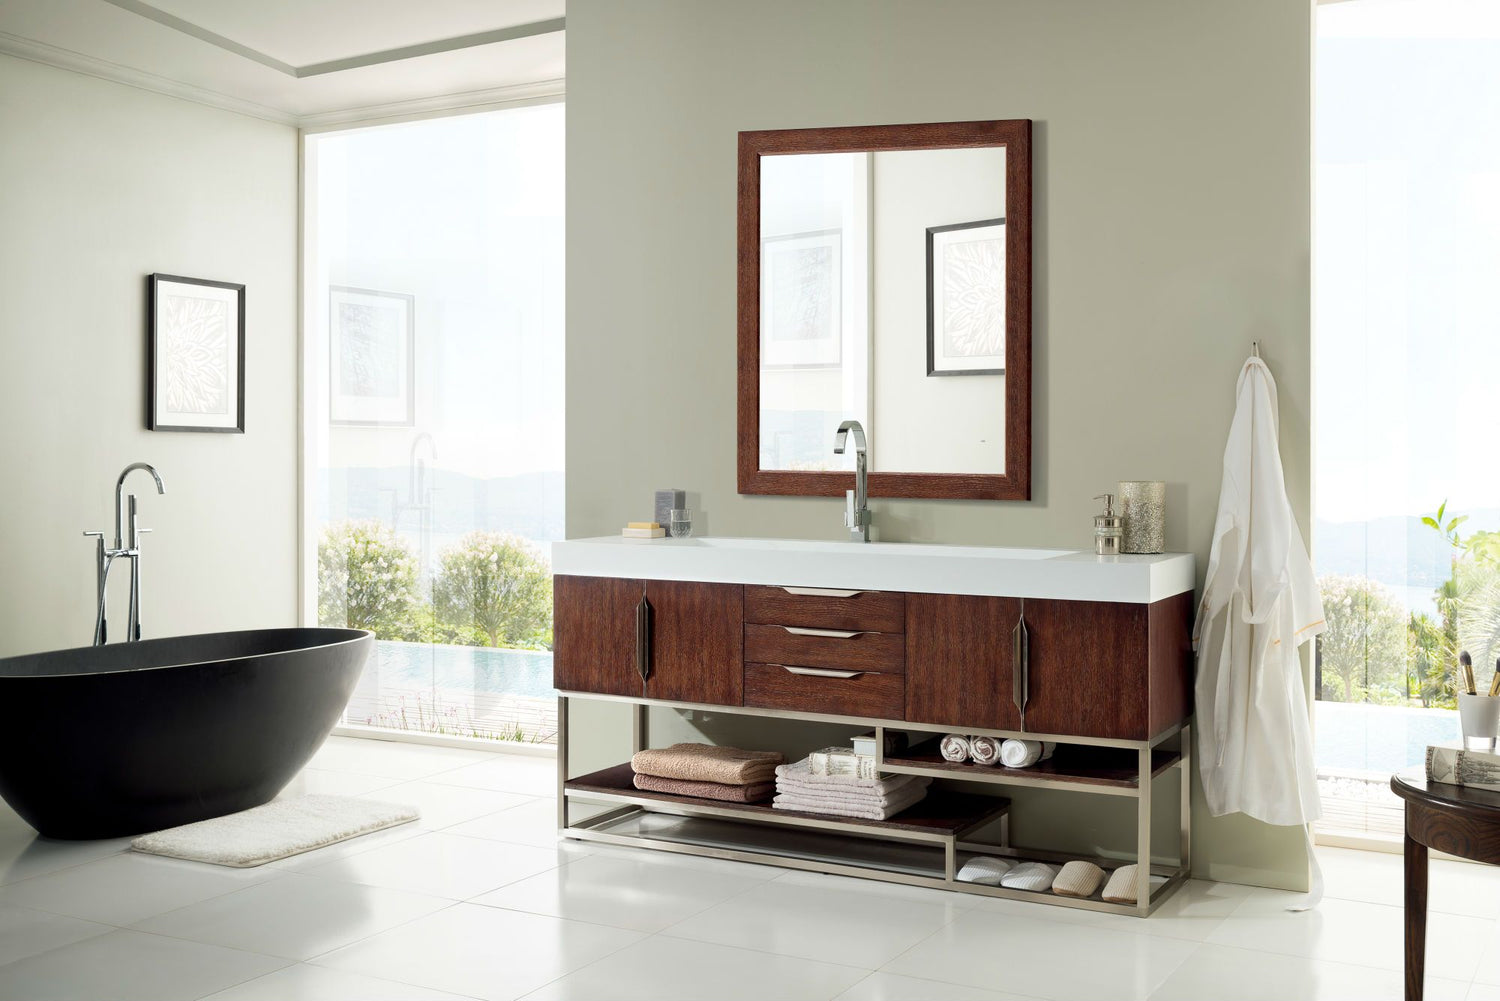 sink double vanity bath of fresh pics home the tuximus vanities bathroom depot single